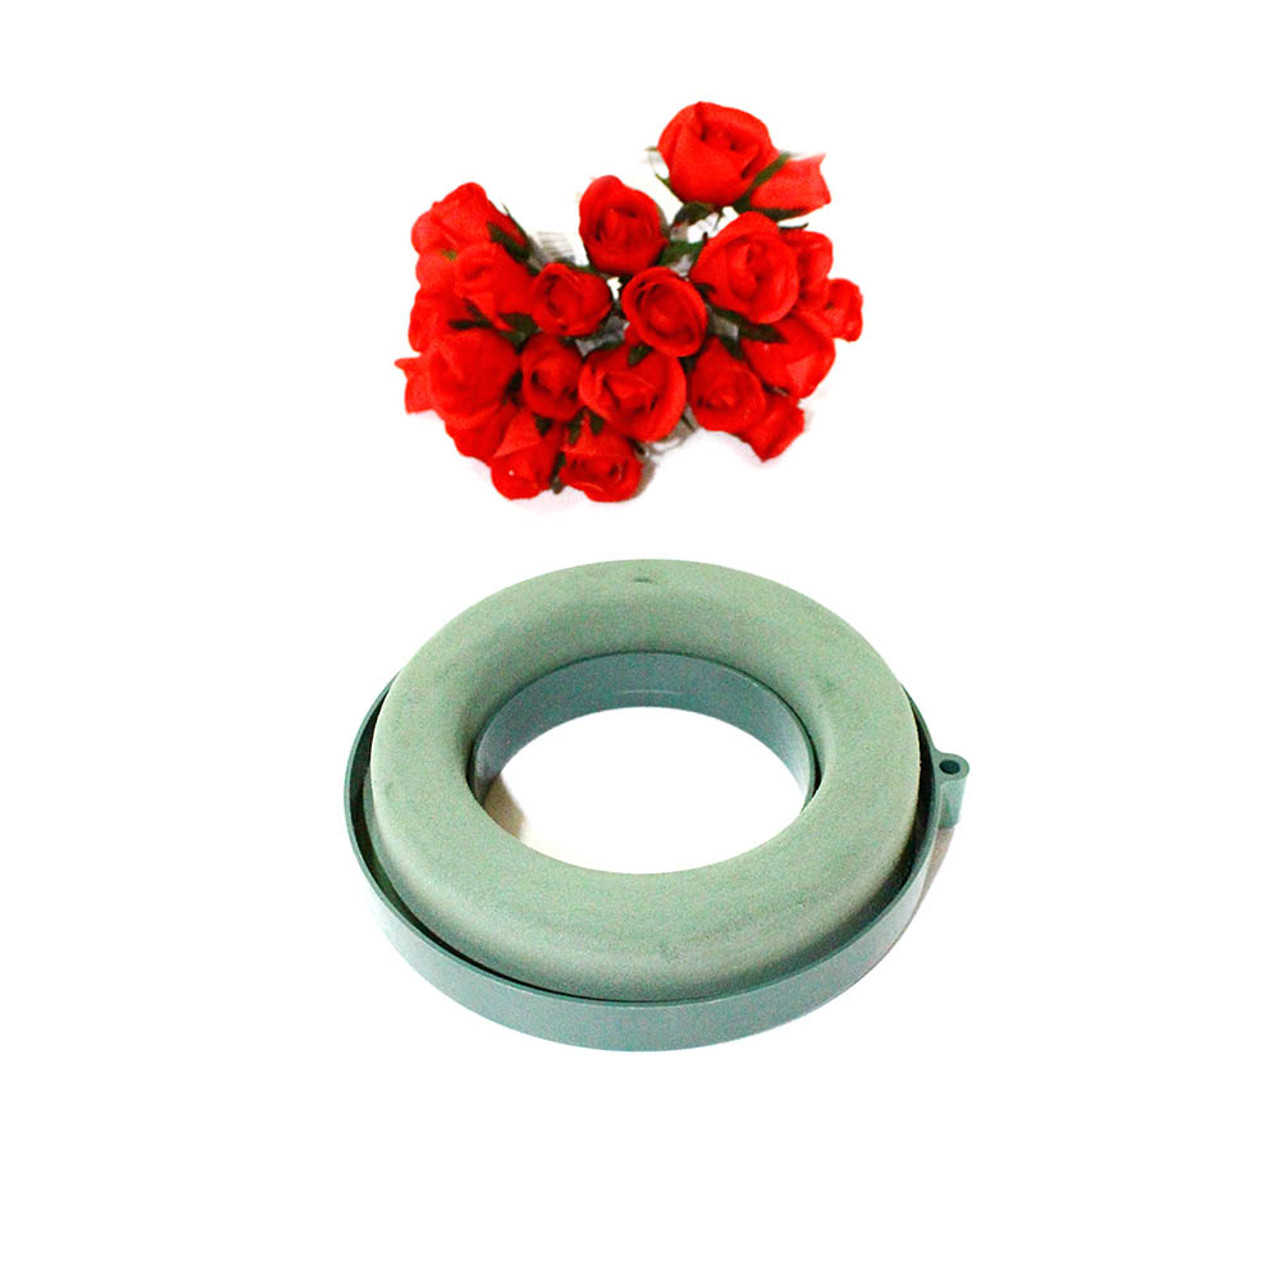 "WET FLORAL FOAM 12/"" FLORIST WREATH RING WITH FOAM BASE PACK of 2"